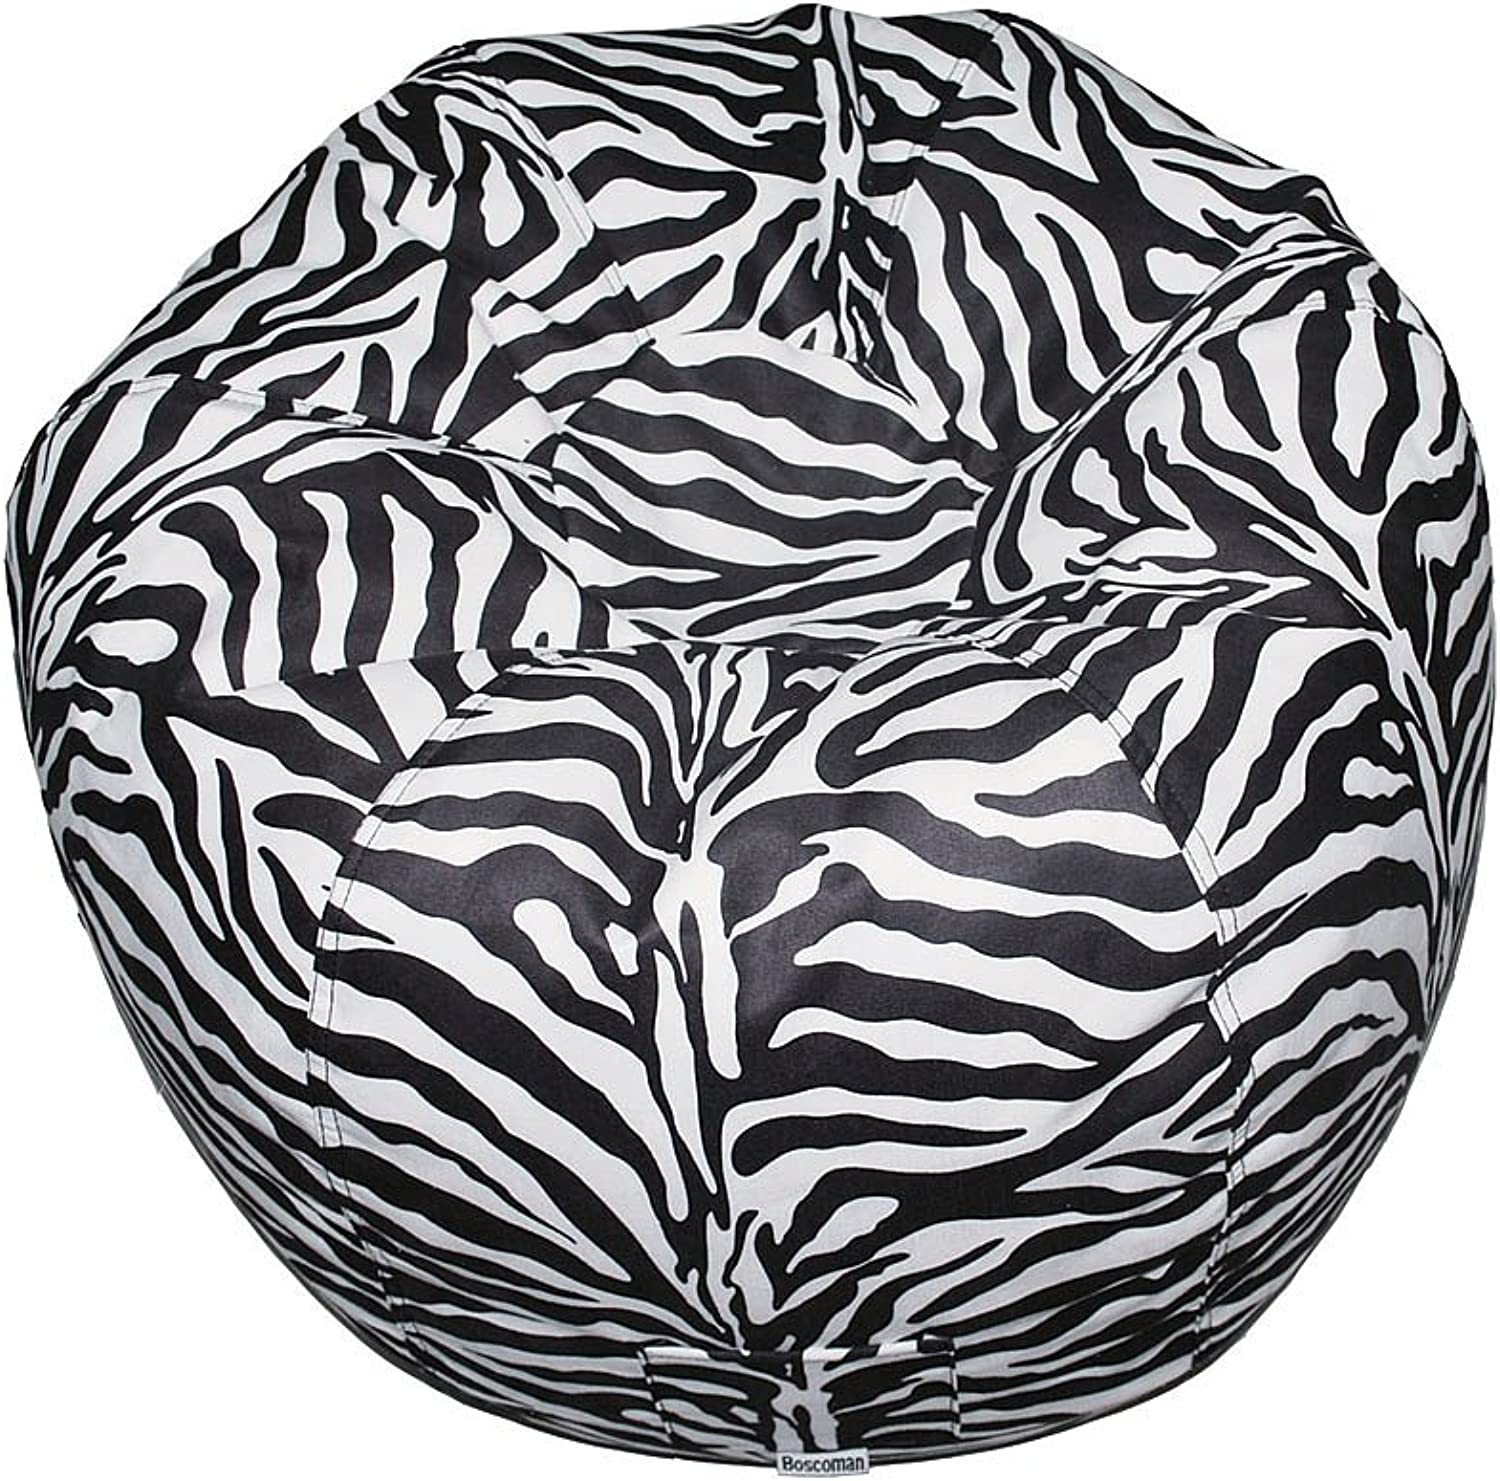 Boscoman - Teen Round Faux Suede Animal Print Beanbag Chair - Zebra (BOX S)